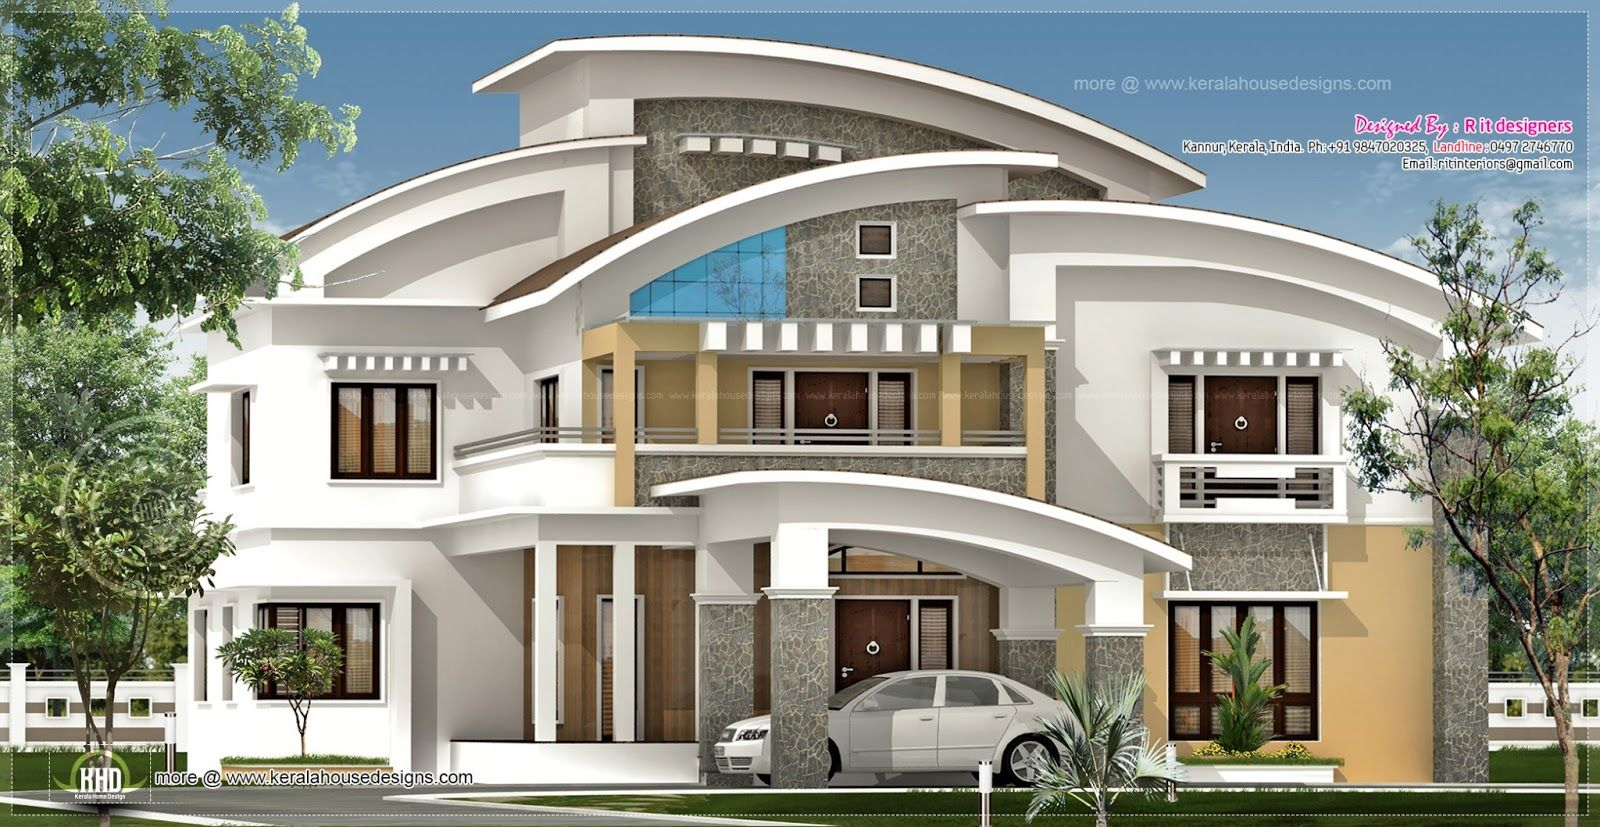 Square Feet Luxury Villa Exterior Kerala Home Design Floor Plans - Luxury home designs photos